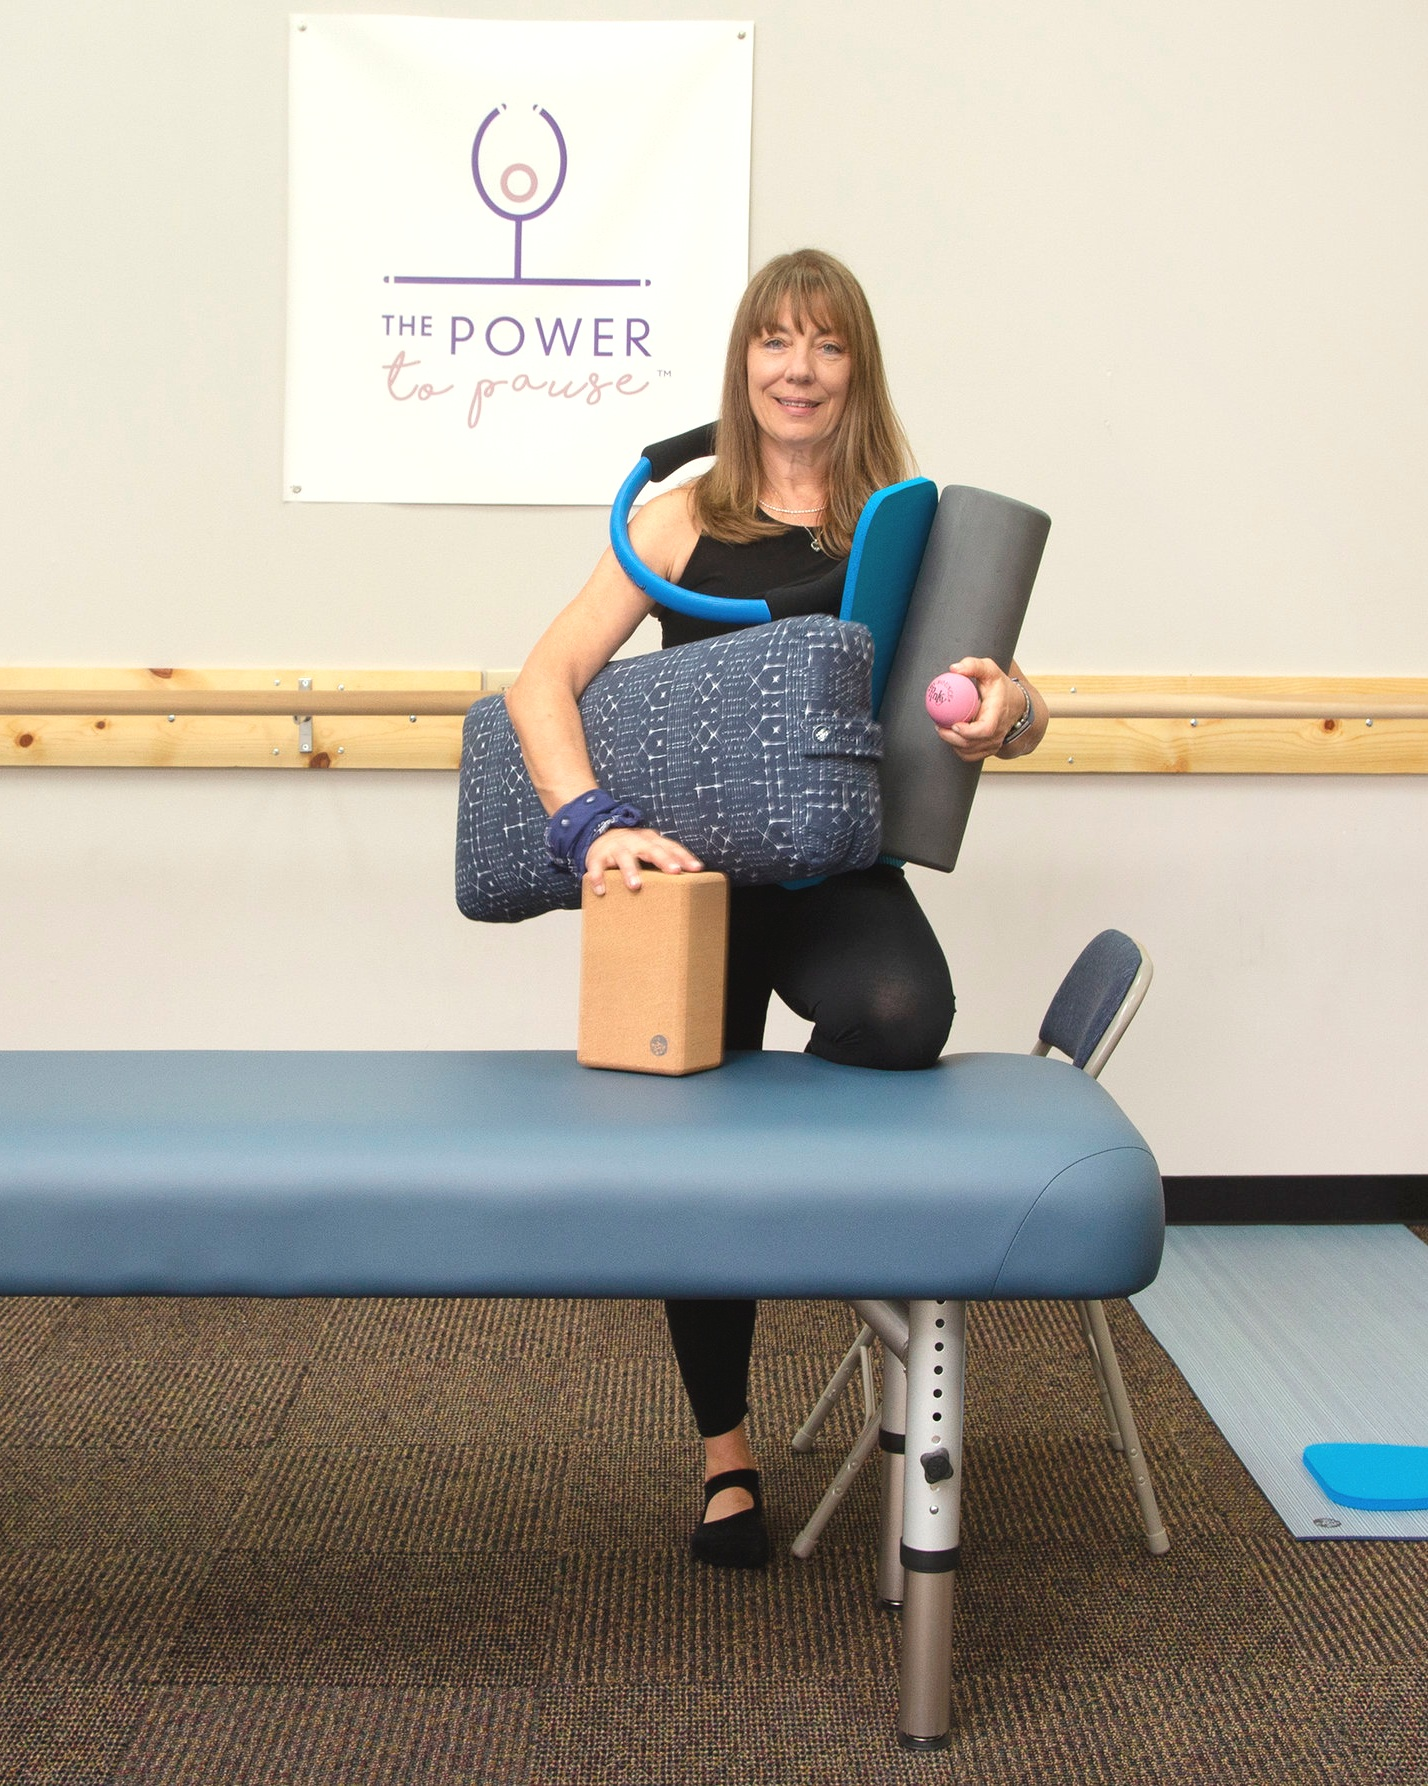 assisted stretching focuses on stretching without straining by using tools to help elongate muscles.